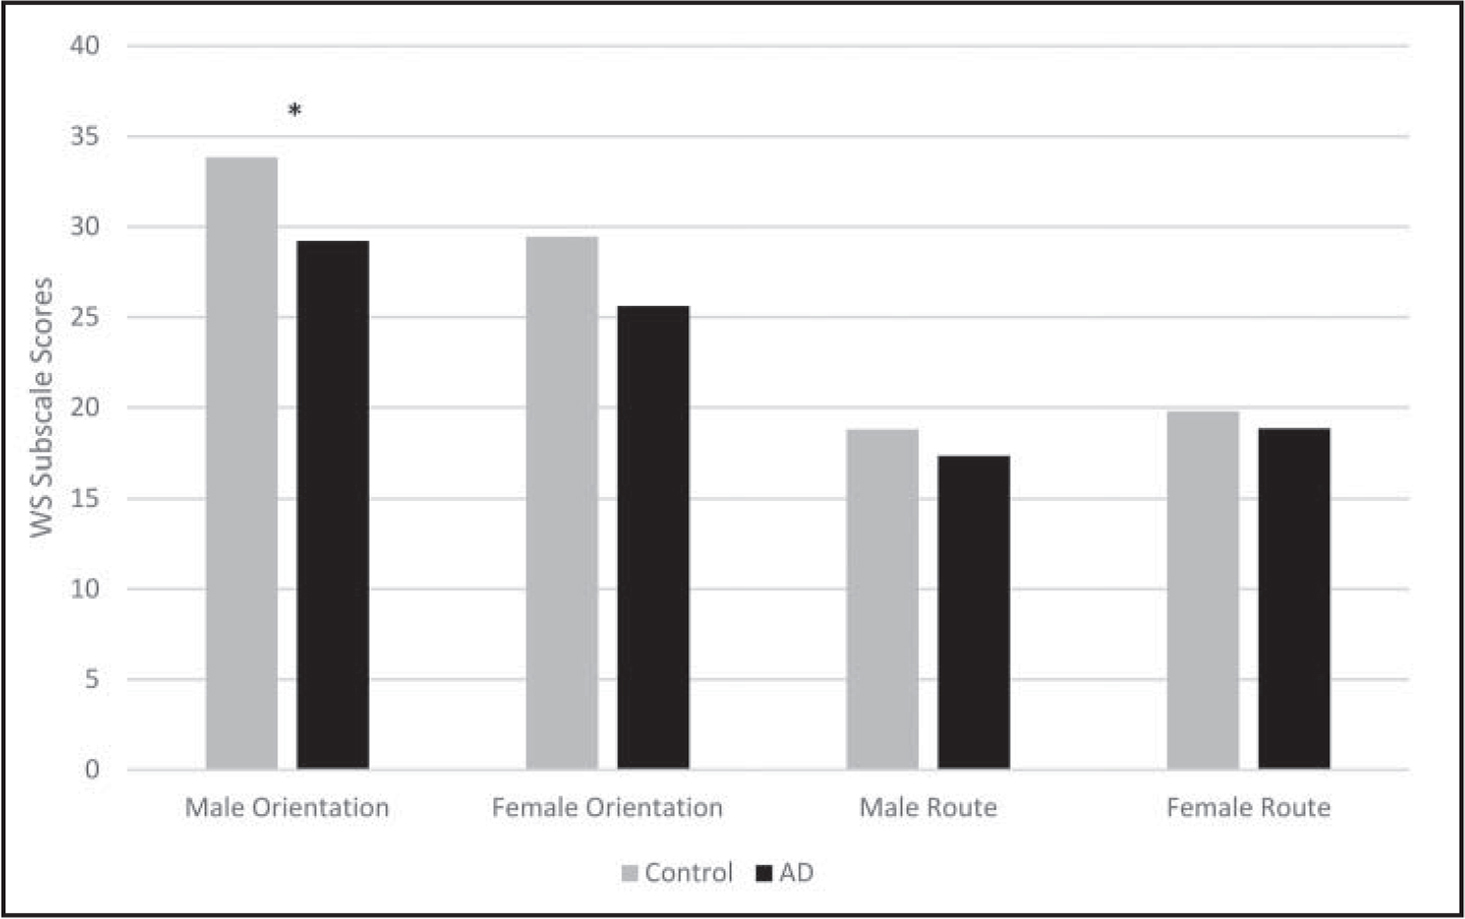 Gender differences in wayfinding strategies between groups.Note. WS = Wayfinding Strategies.*p < 0.05.